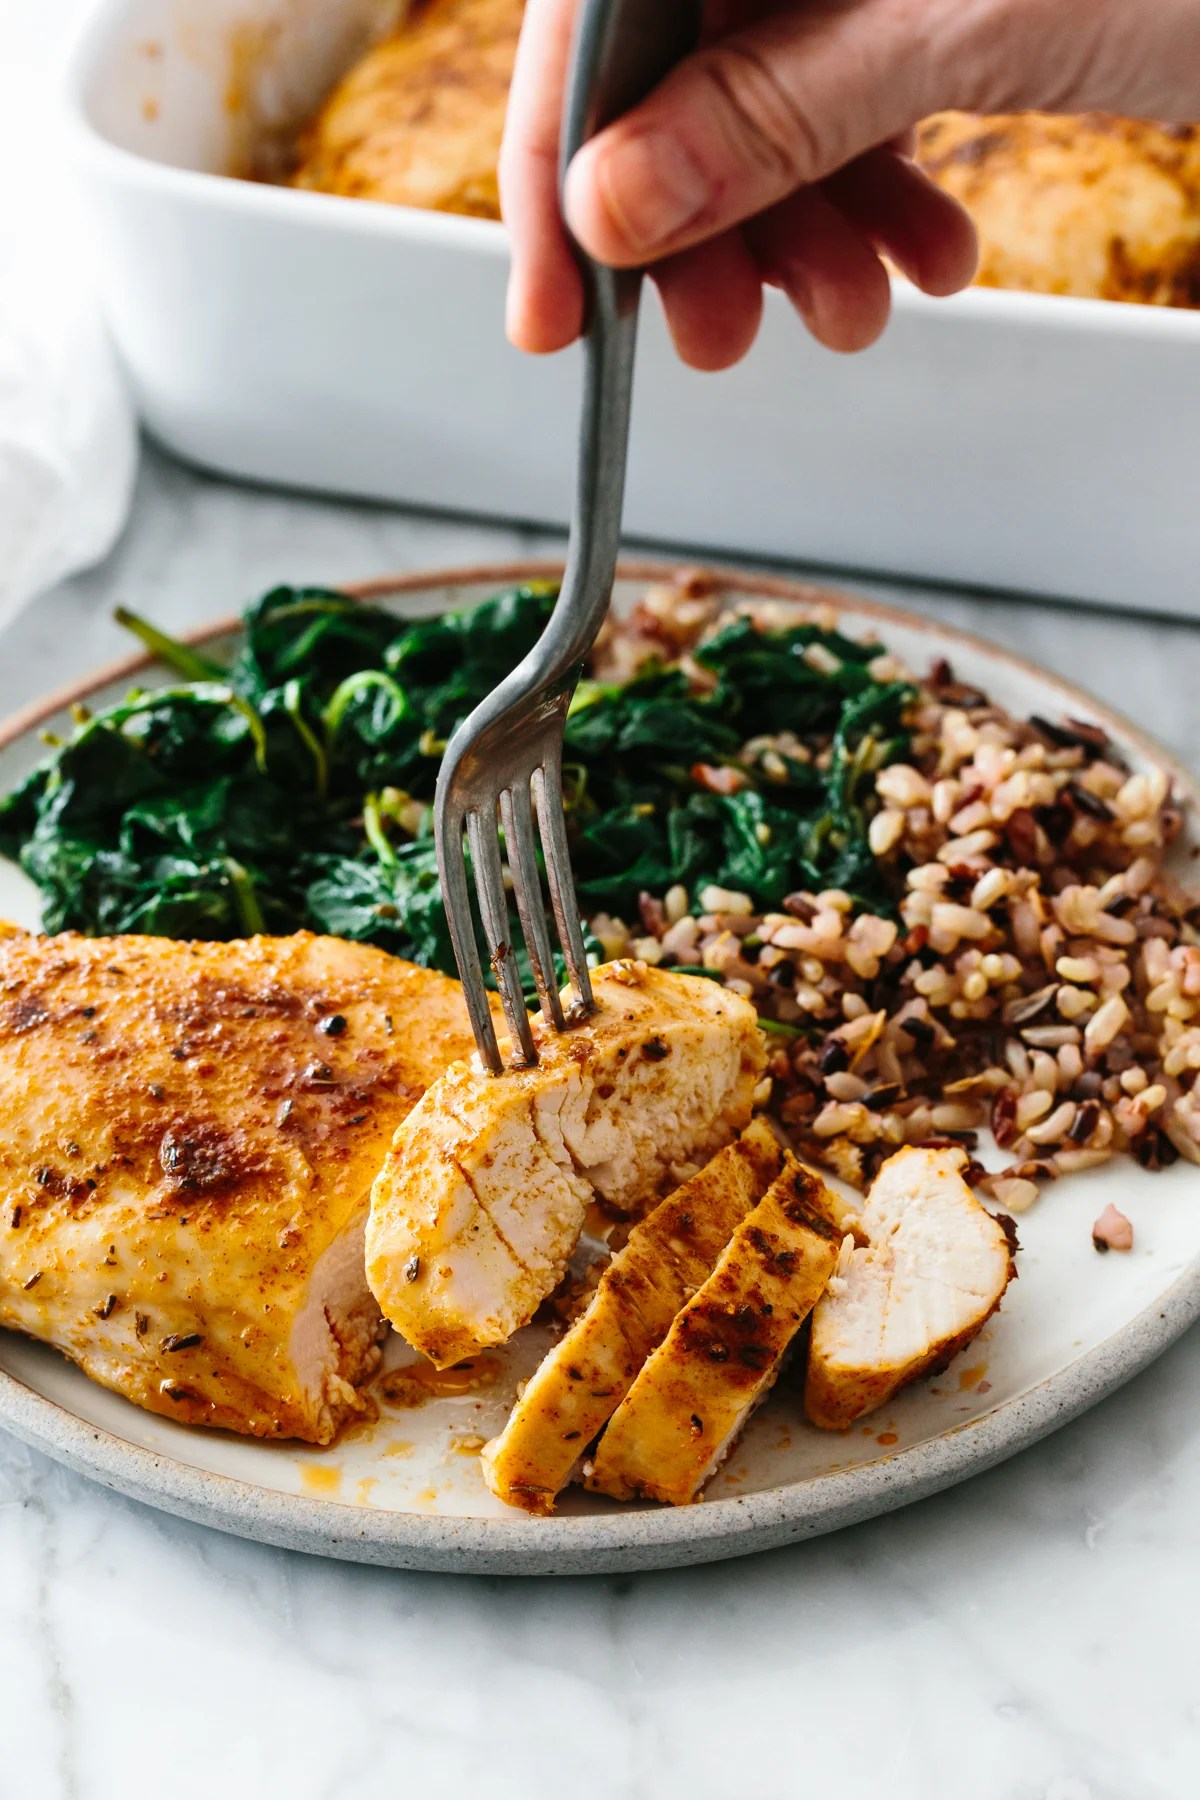 Baked chicken breast with spinach and rice on a plate.